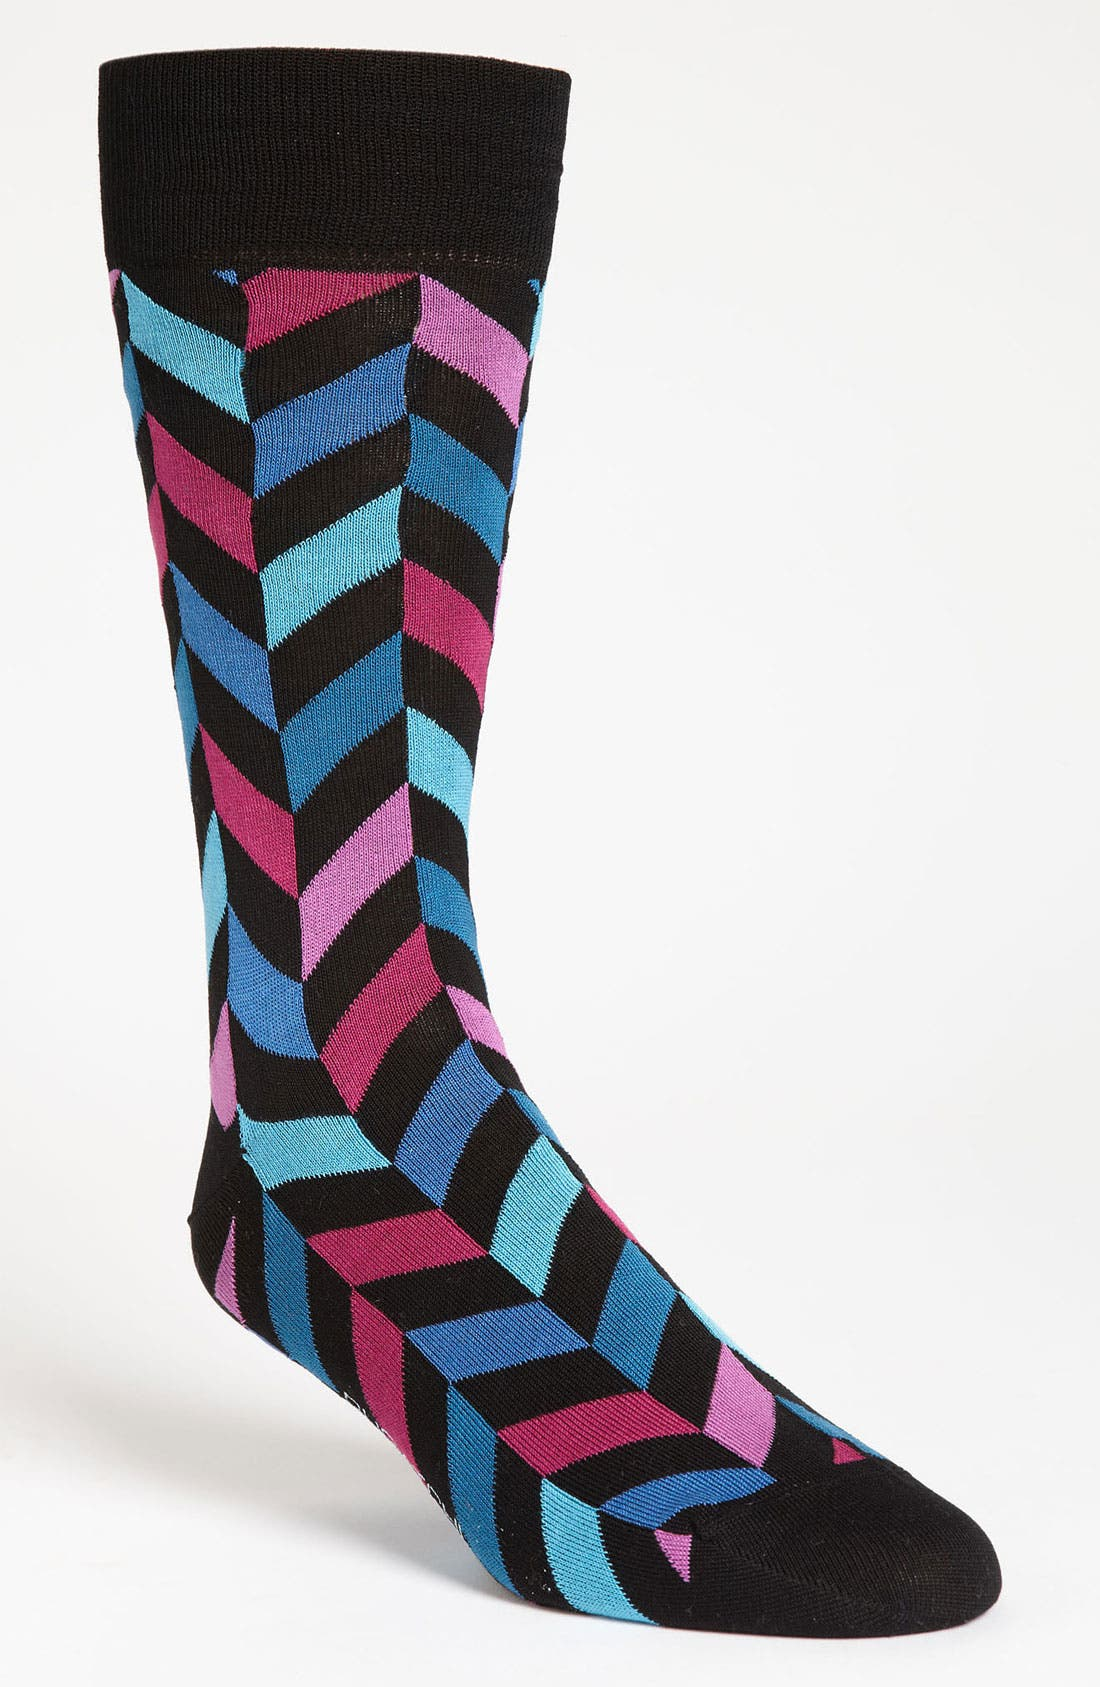 Alternate Image 1 Selected - Bugatchi Uomo Herringbone Socks